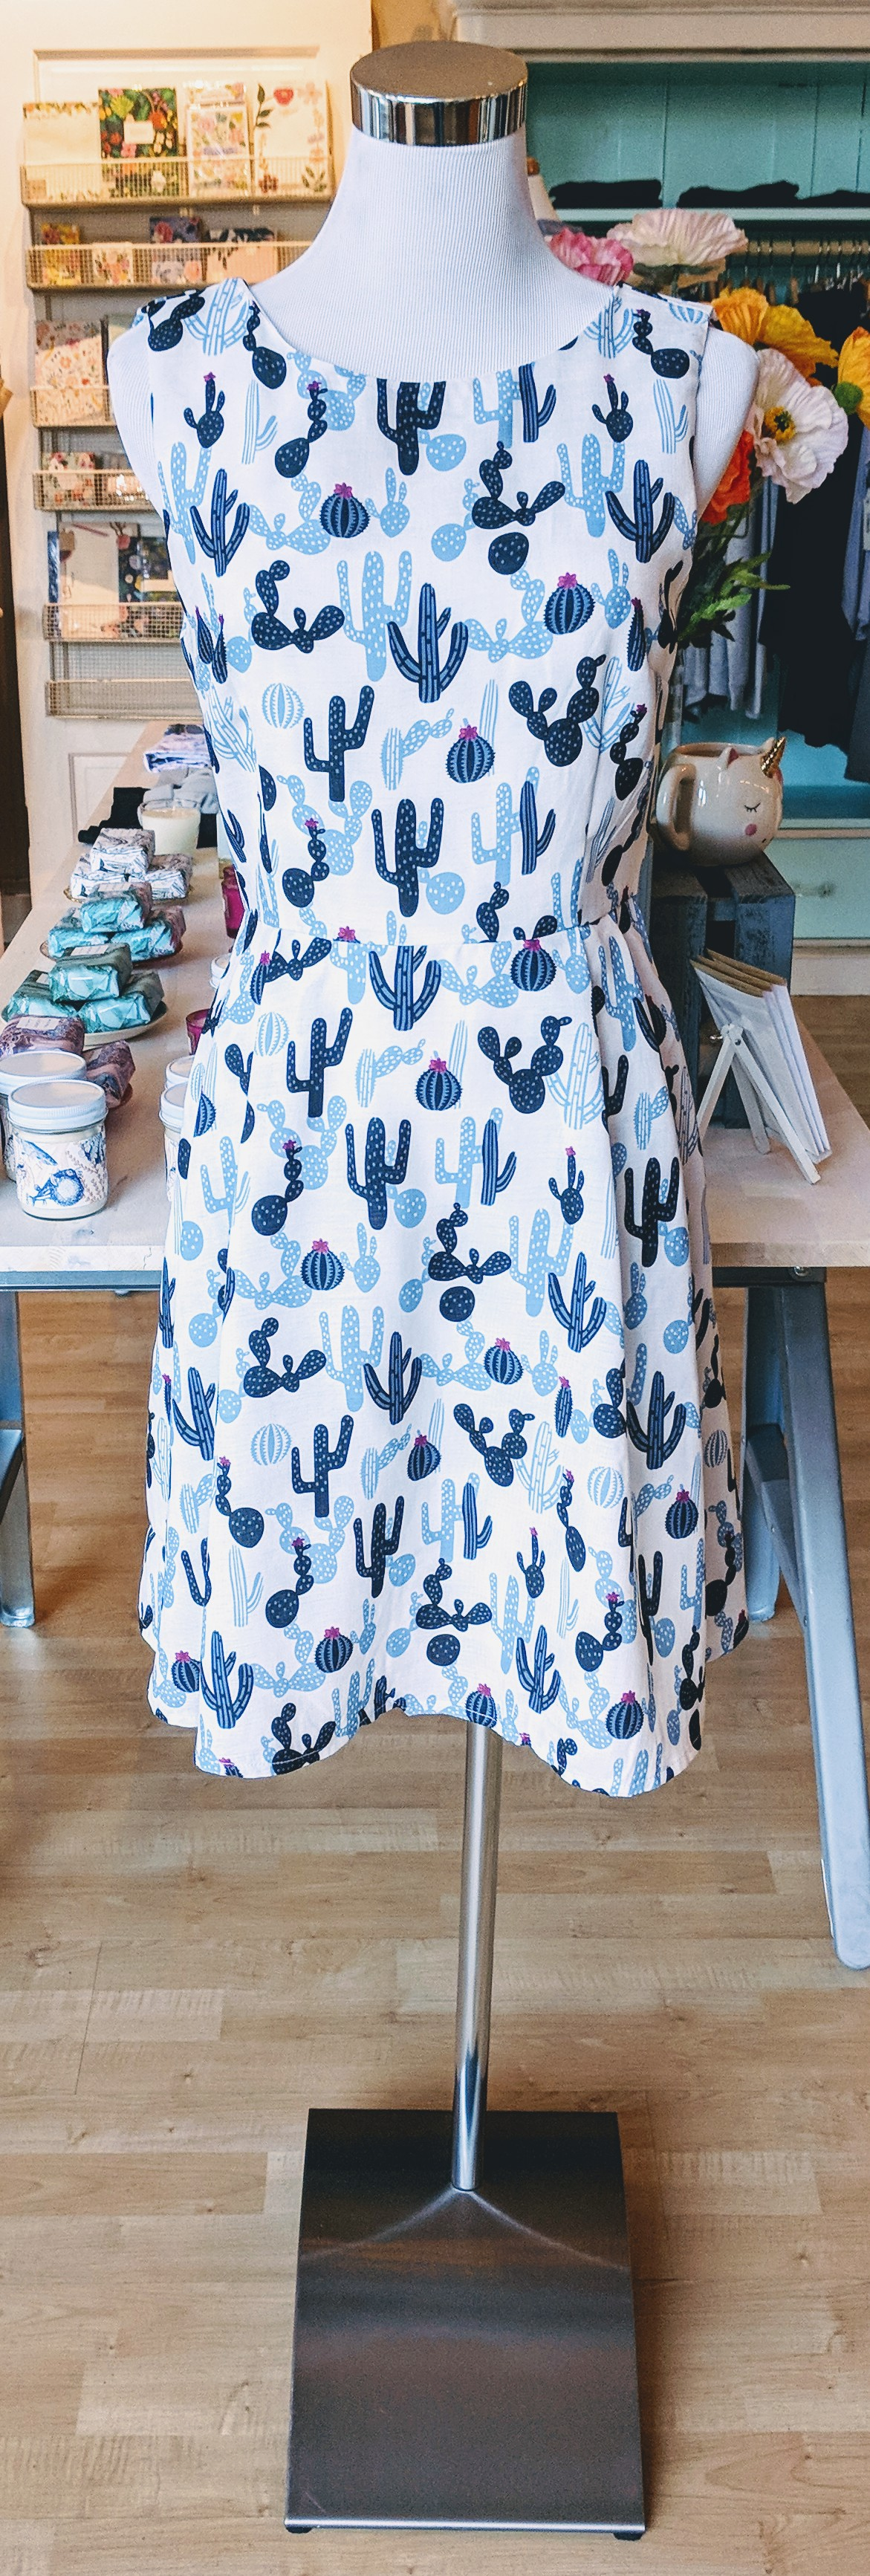 Simple blue cactus print dress with pockets.